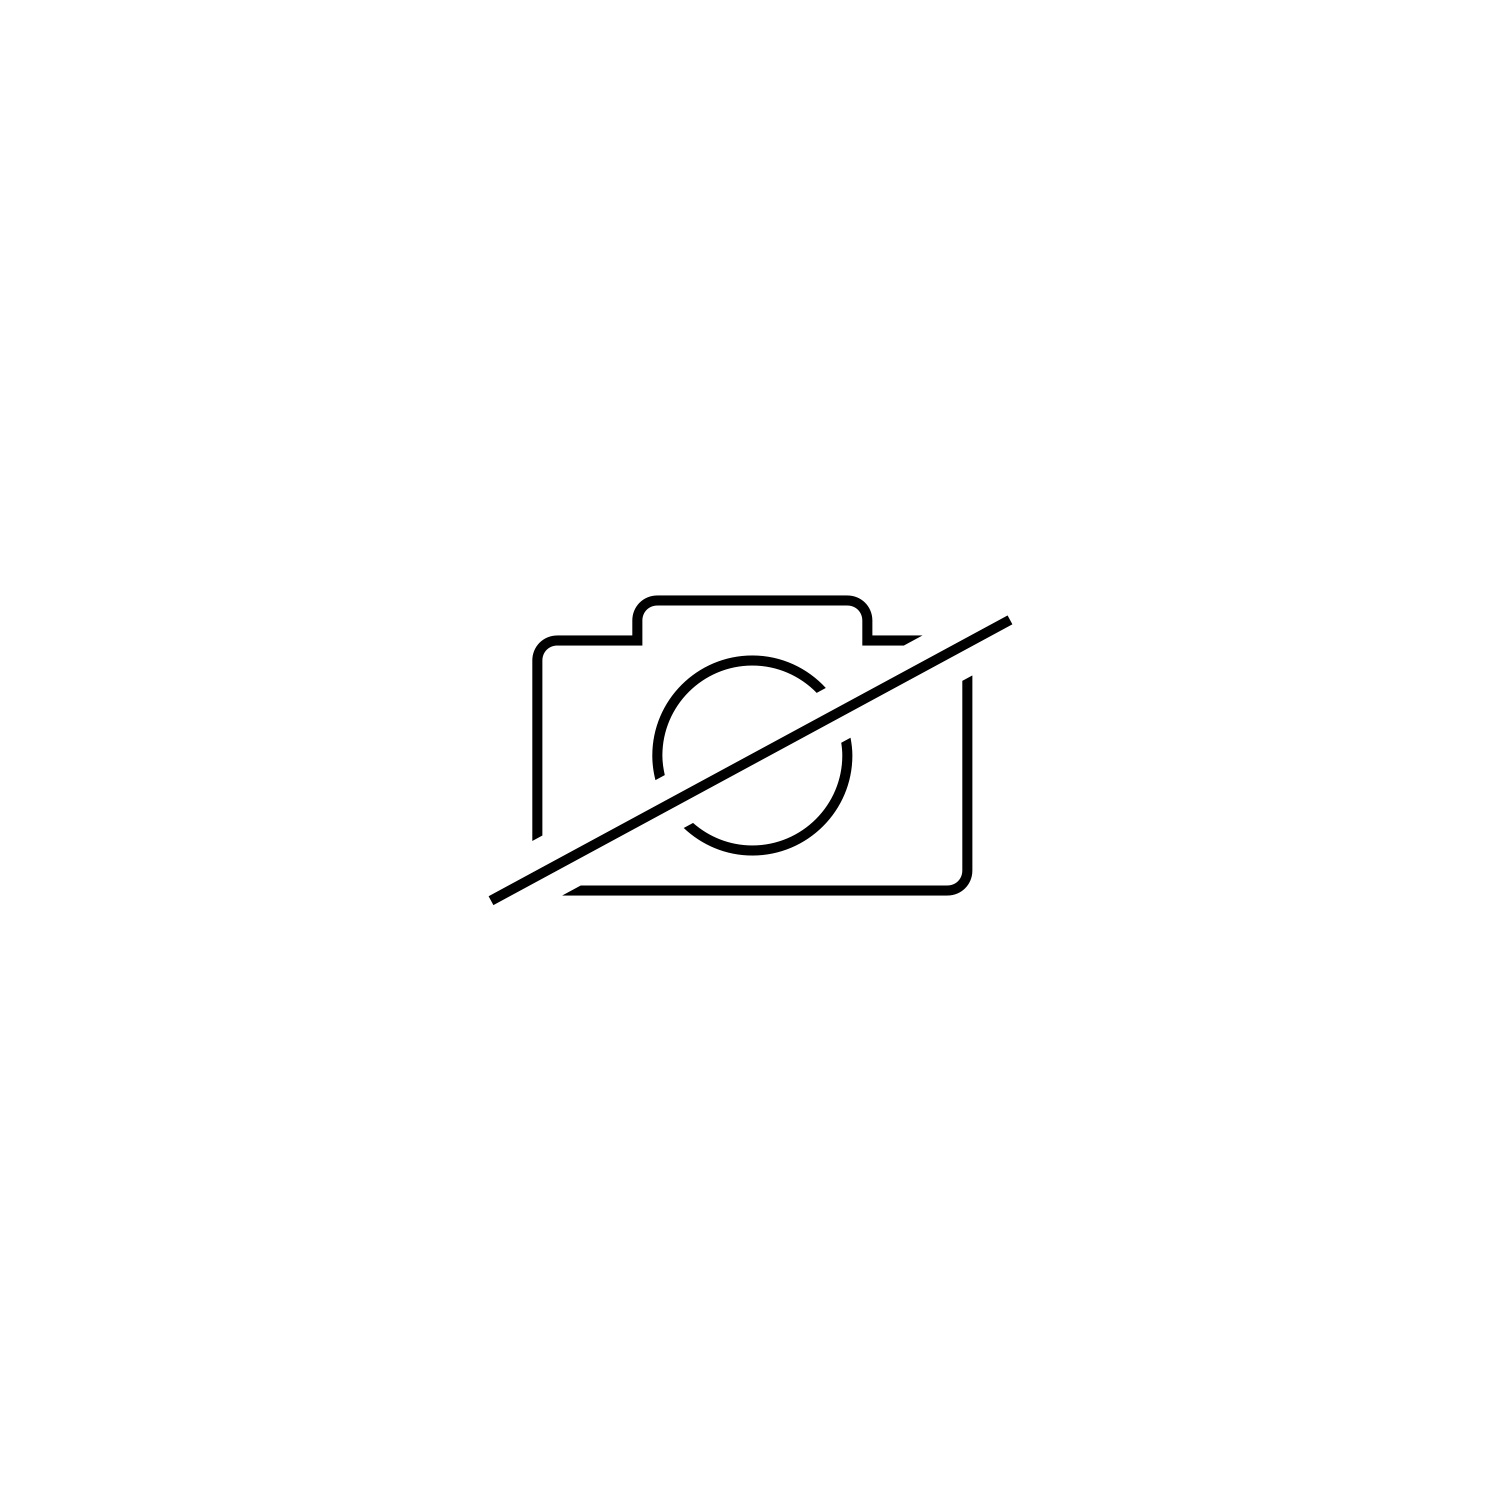 Audi Sport Zipoffjacket, Mens, black, L